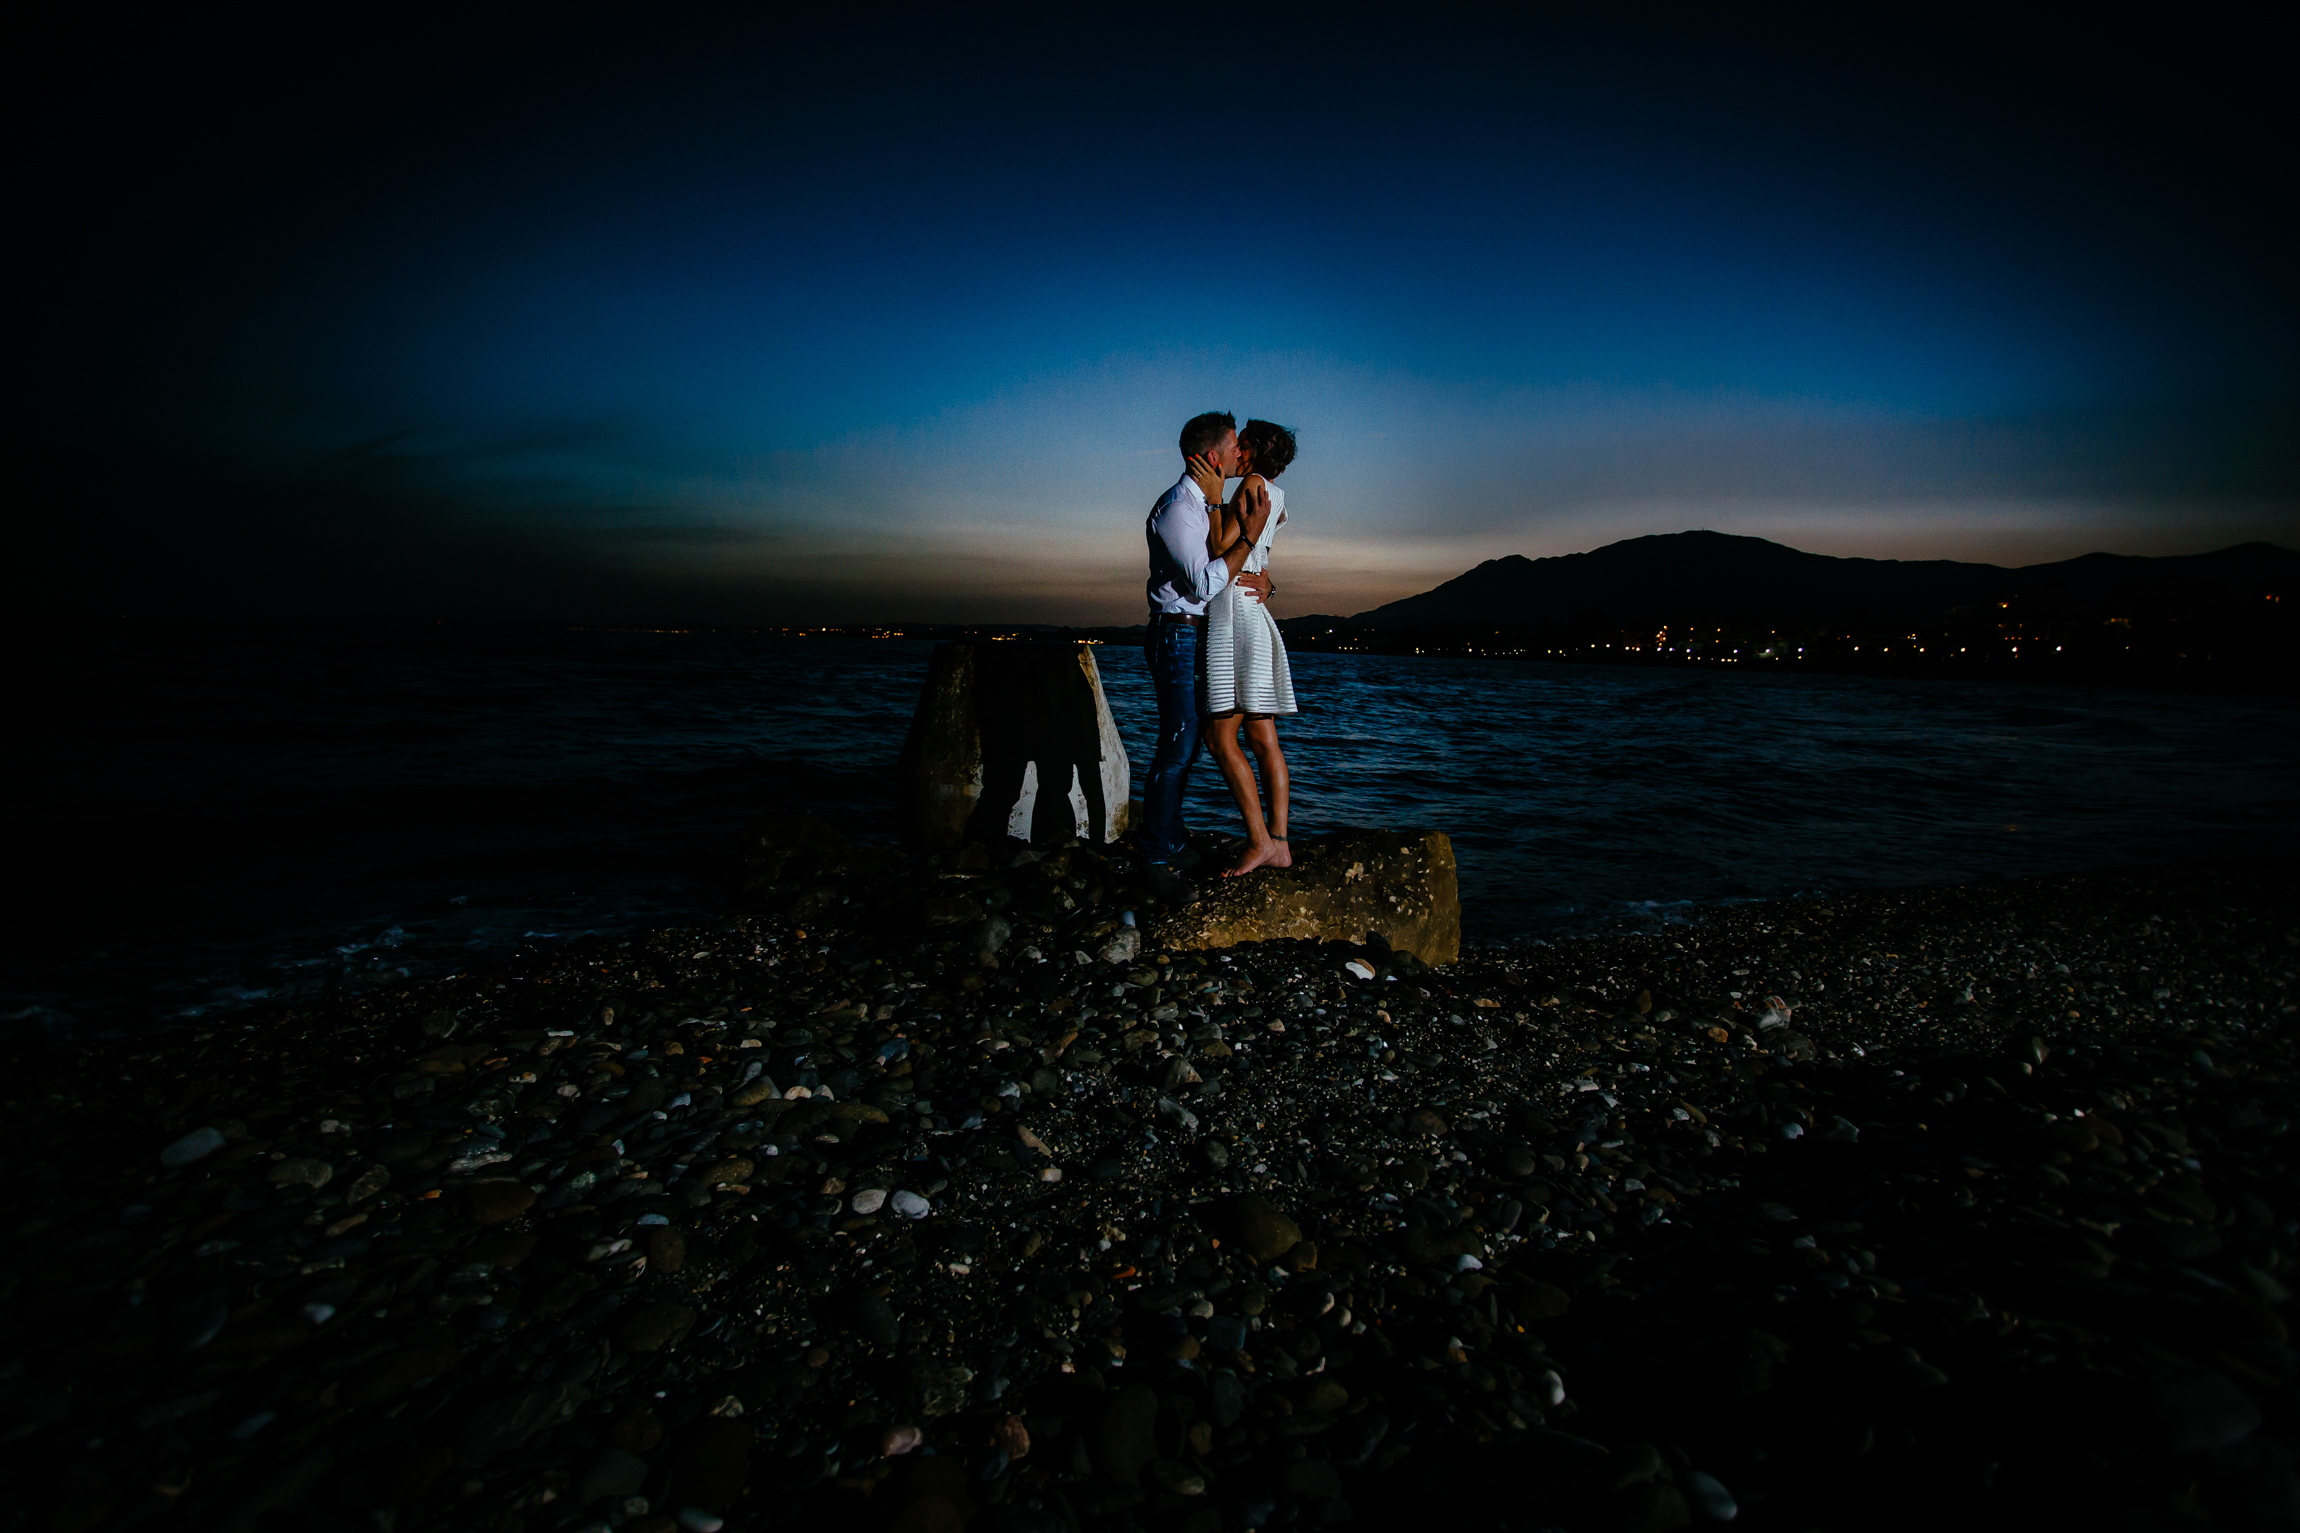 Louise & Ant - Destination engagement photography marbella sansom photography-28